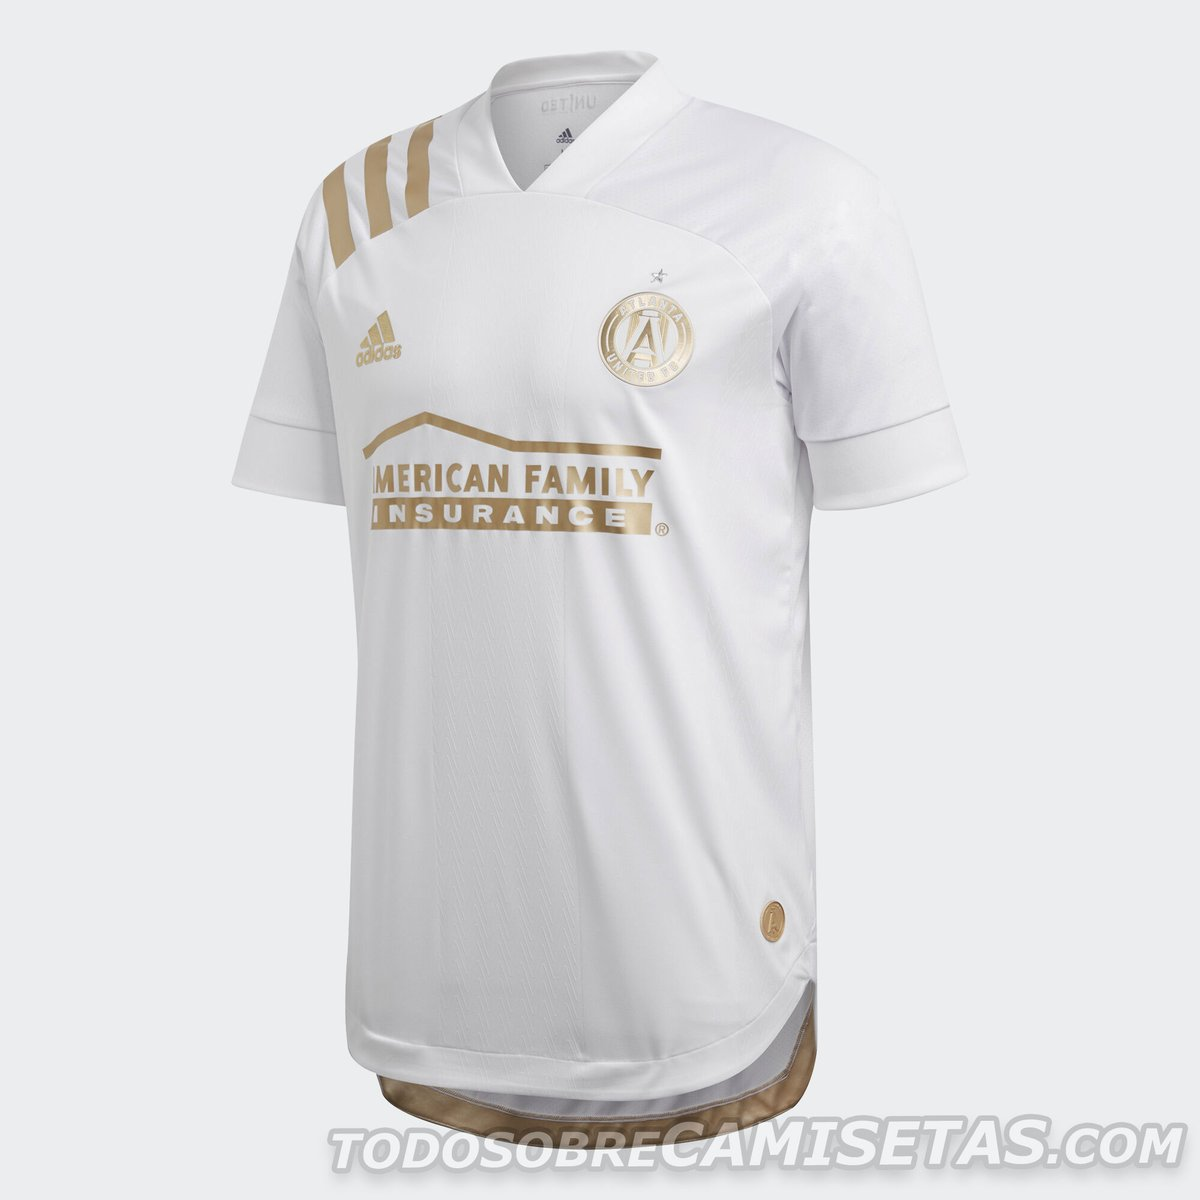 MLS 2020 adidas Kits - Atlanta United FC 2020 adidas Away Kit